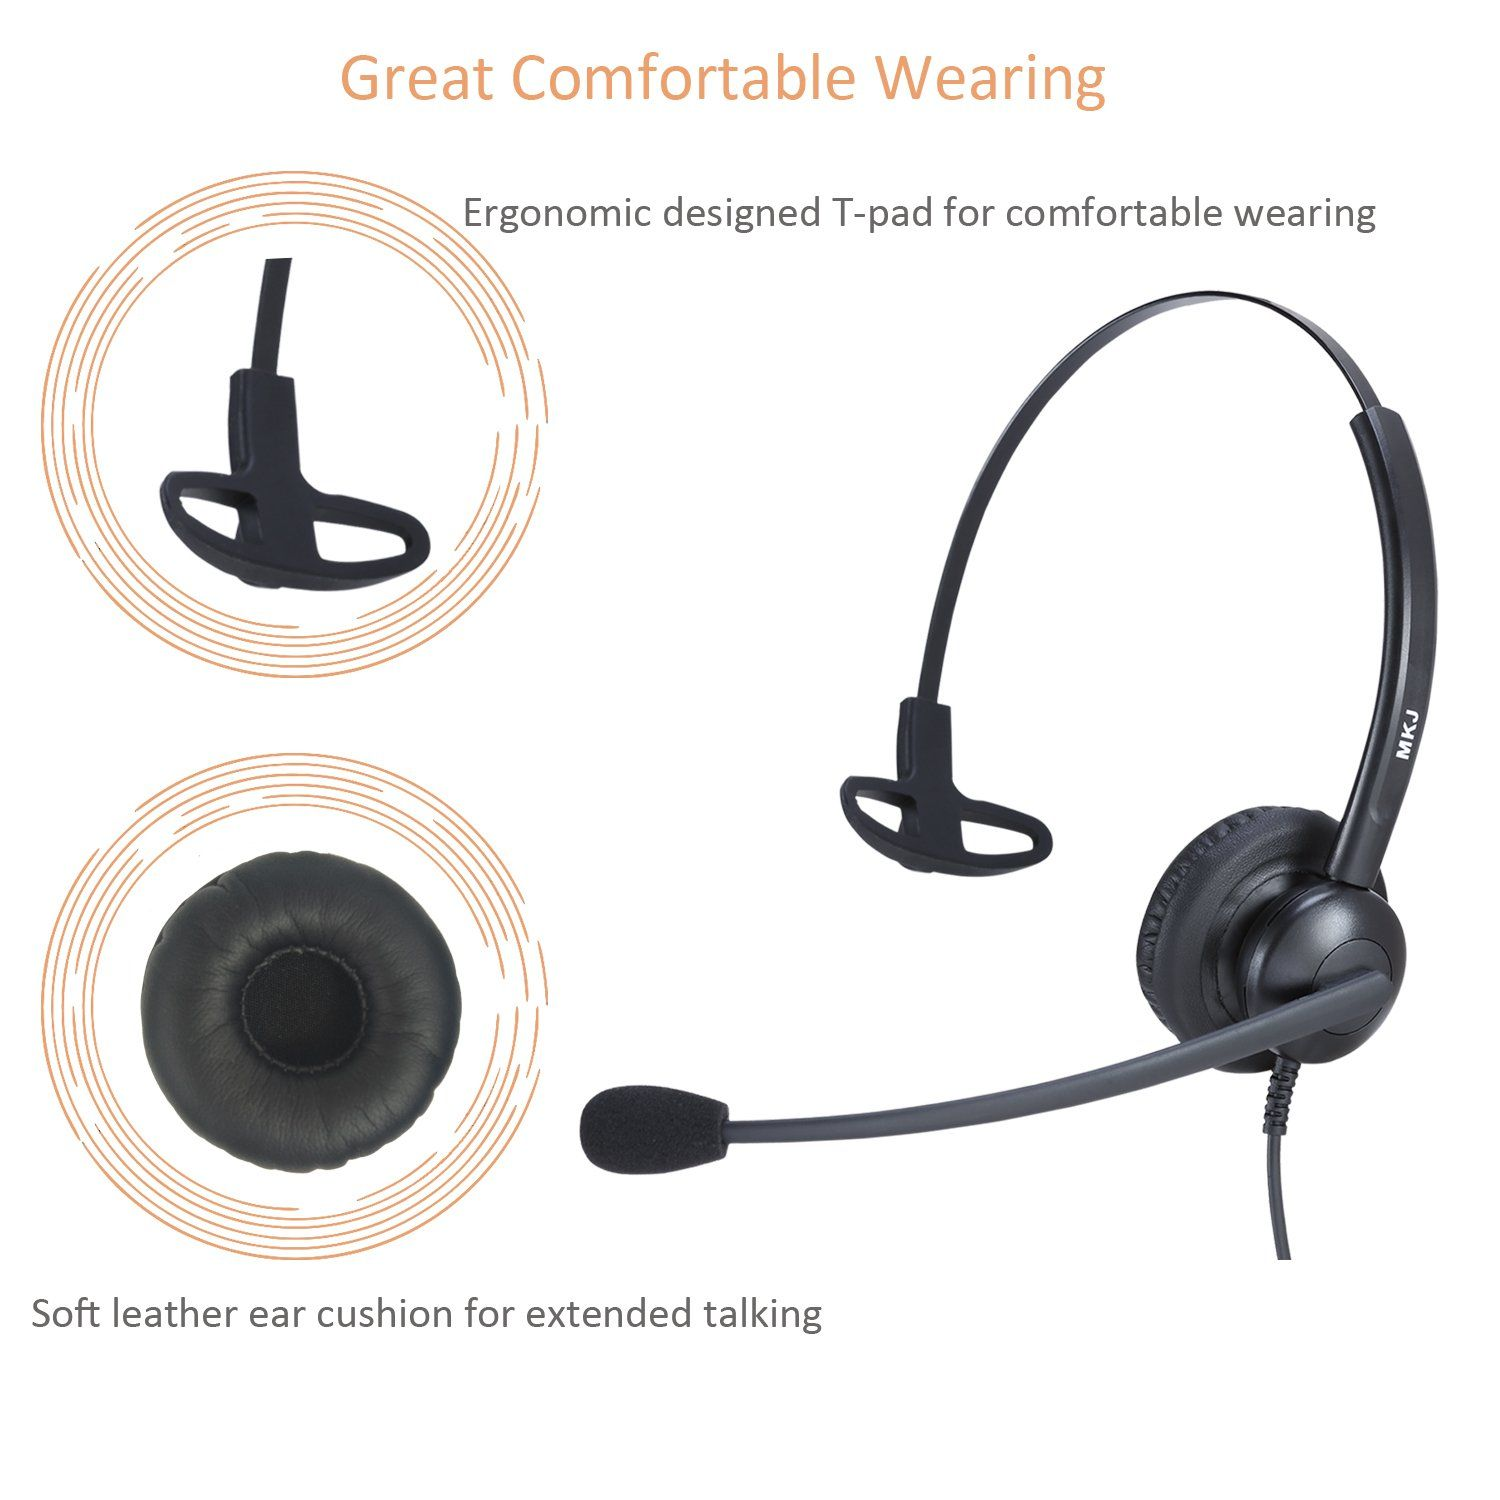 Phone Headset 3 5mm Cellphone Headset With Microphone Noise Cancelling For Ipad Iphone Samsung Zte Huawei And Most Smar Phone Accessories Smartphone Cell Phone